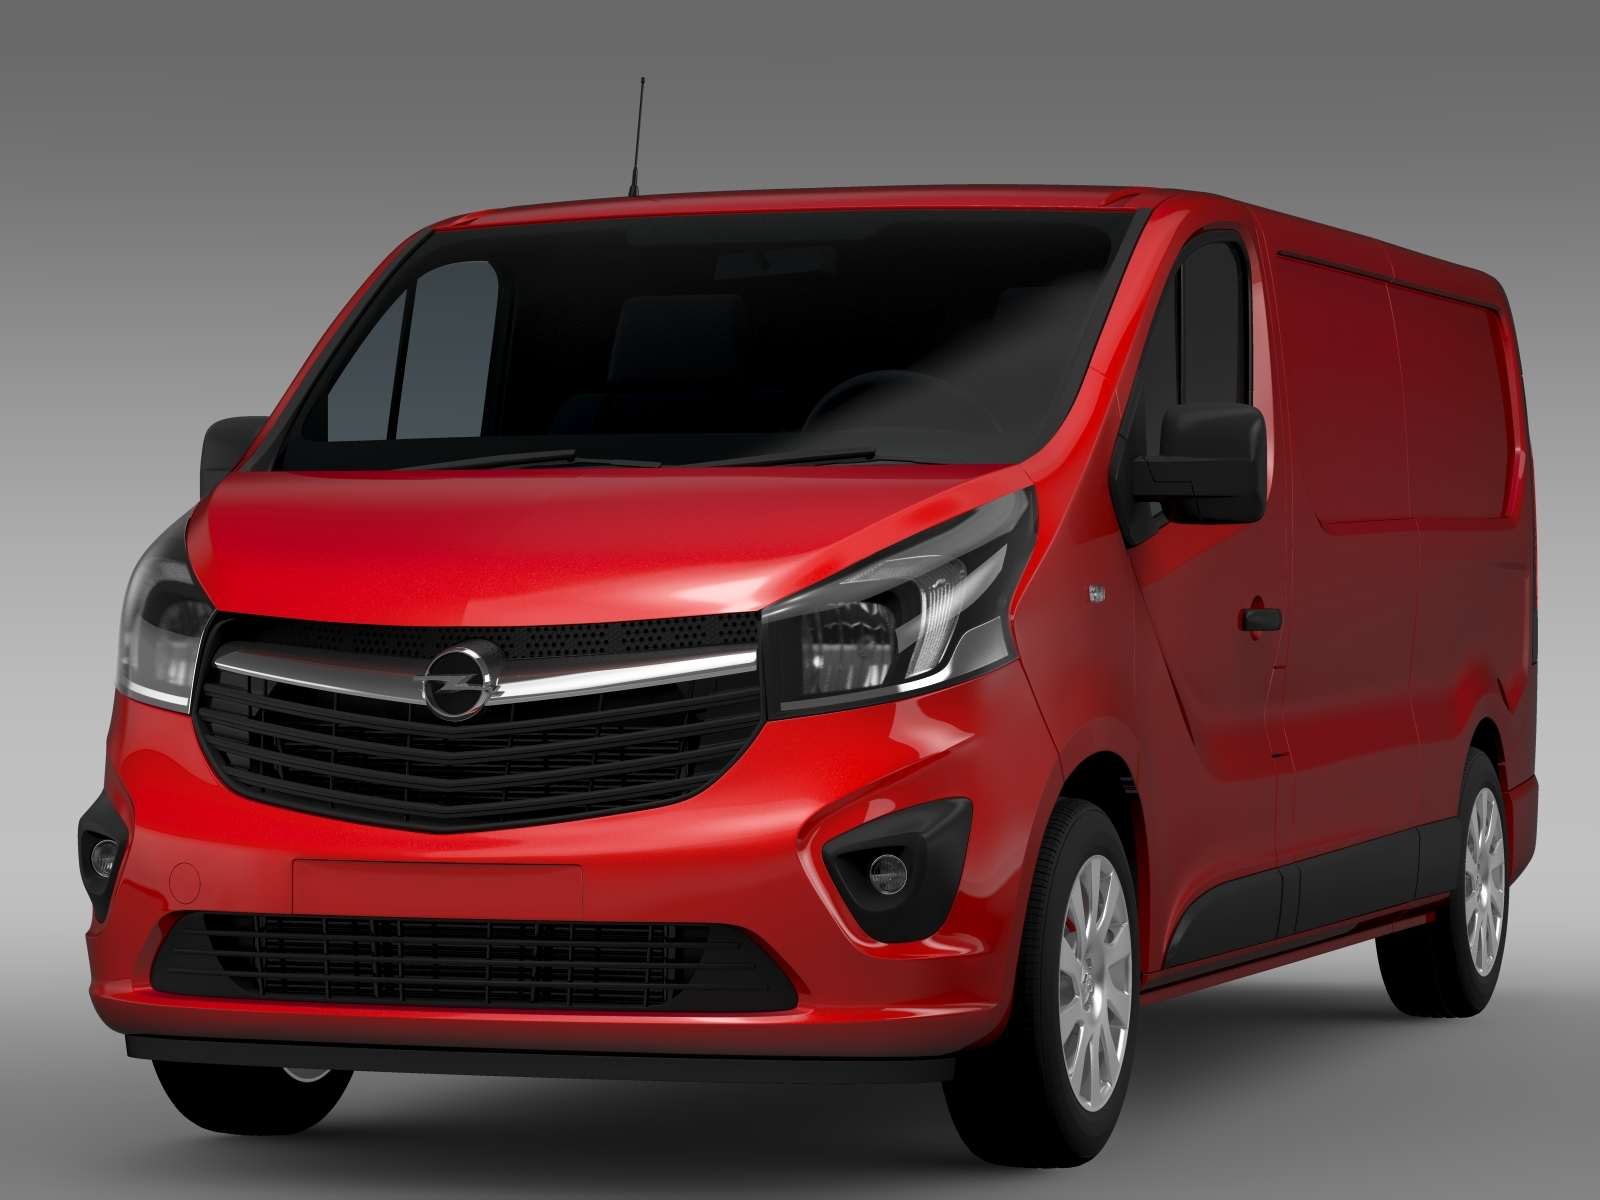 opel vivaro l2h1 lwb 2015 3d model. Black Bedroom Furniture Sets. Home Design Ideas